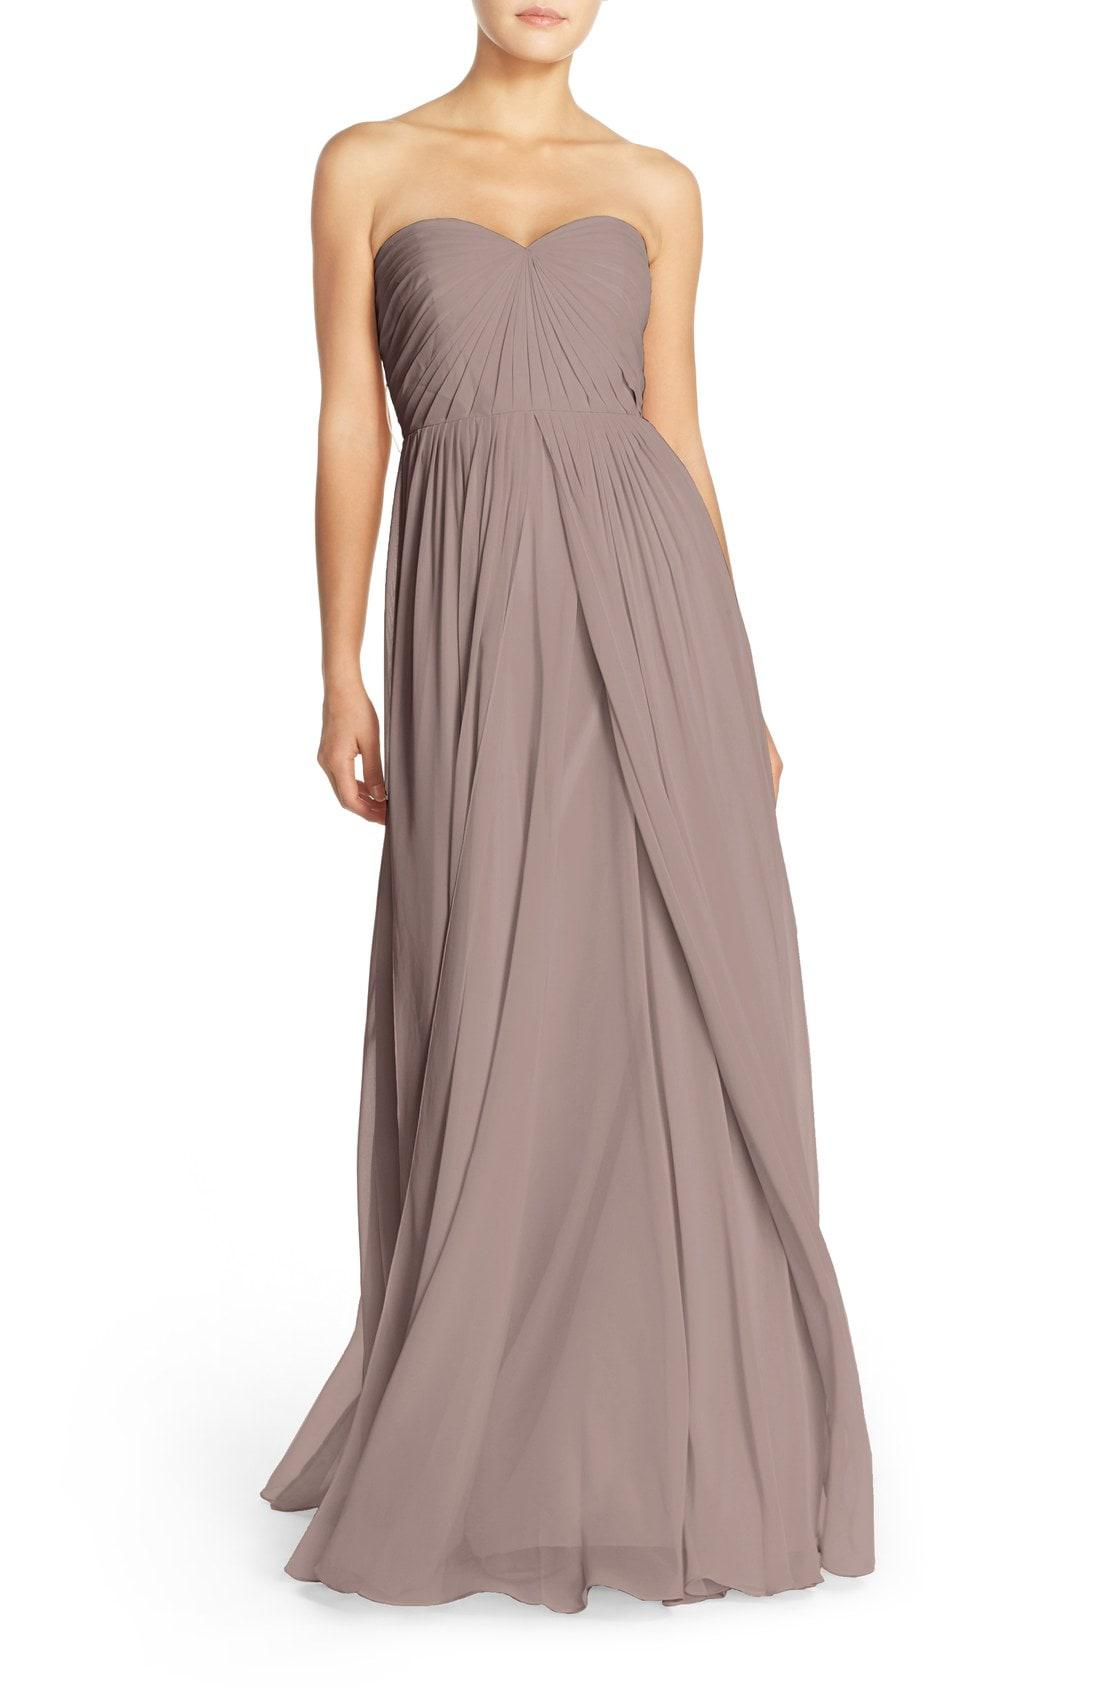 e0a735ac1912 Lyst - Jenny Yoo Mira Convertible Strapless Chiffon Gown in Brown